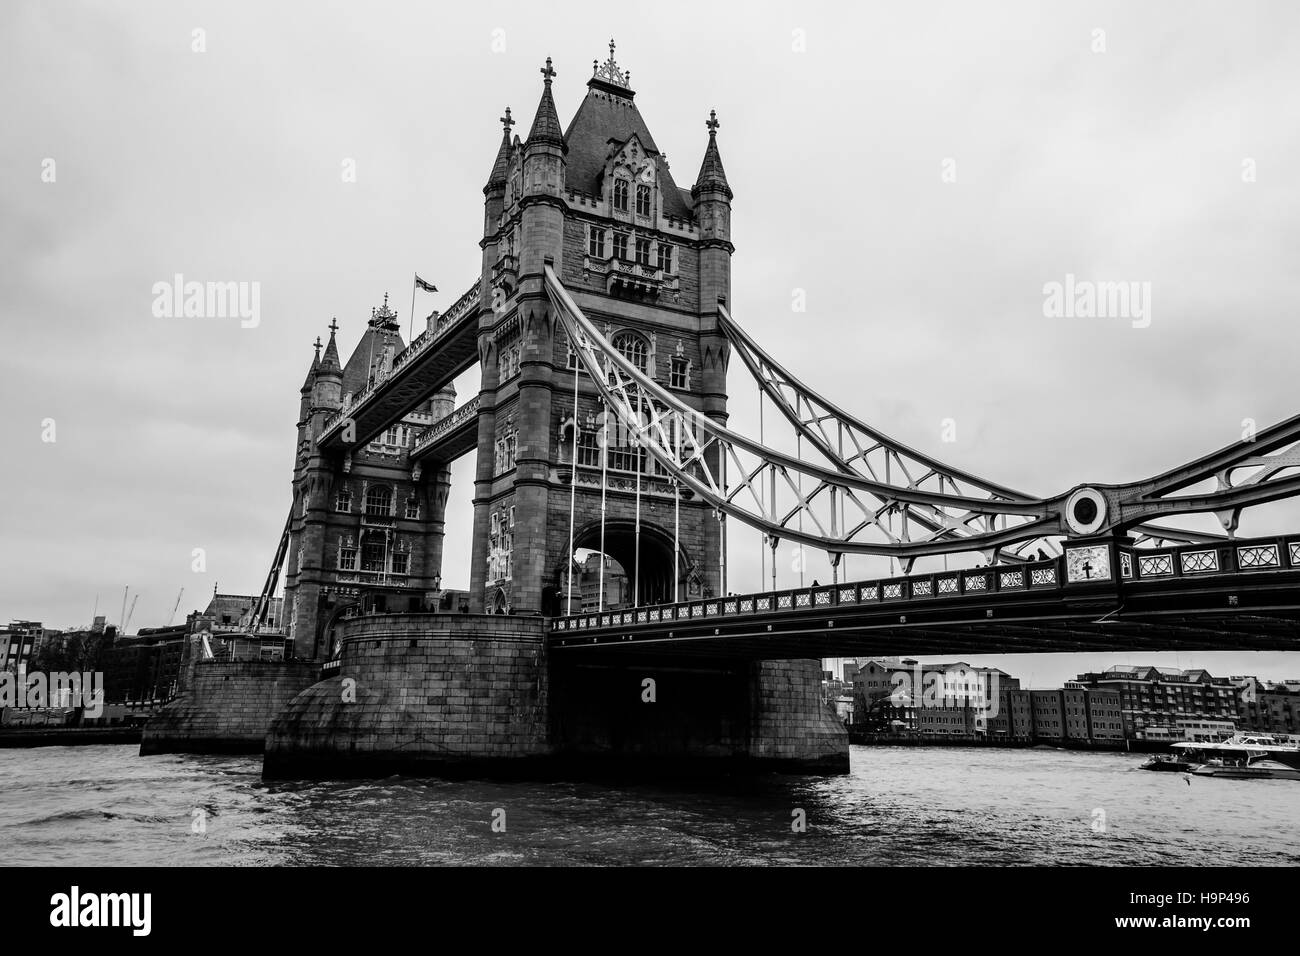 Black and white side view of the Tower Bridge and river Thames in London, United Kingdom. - Stock Image